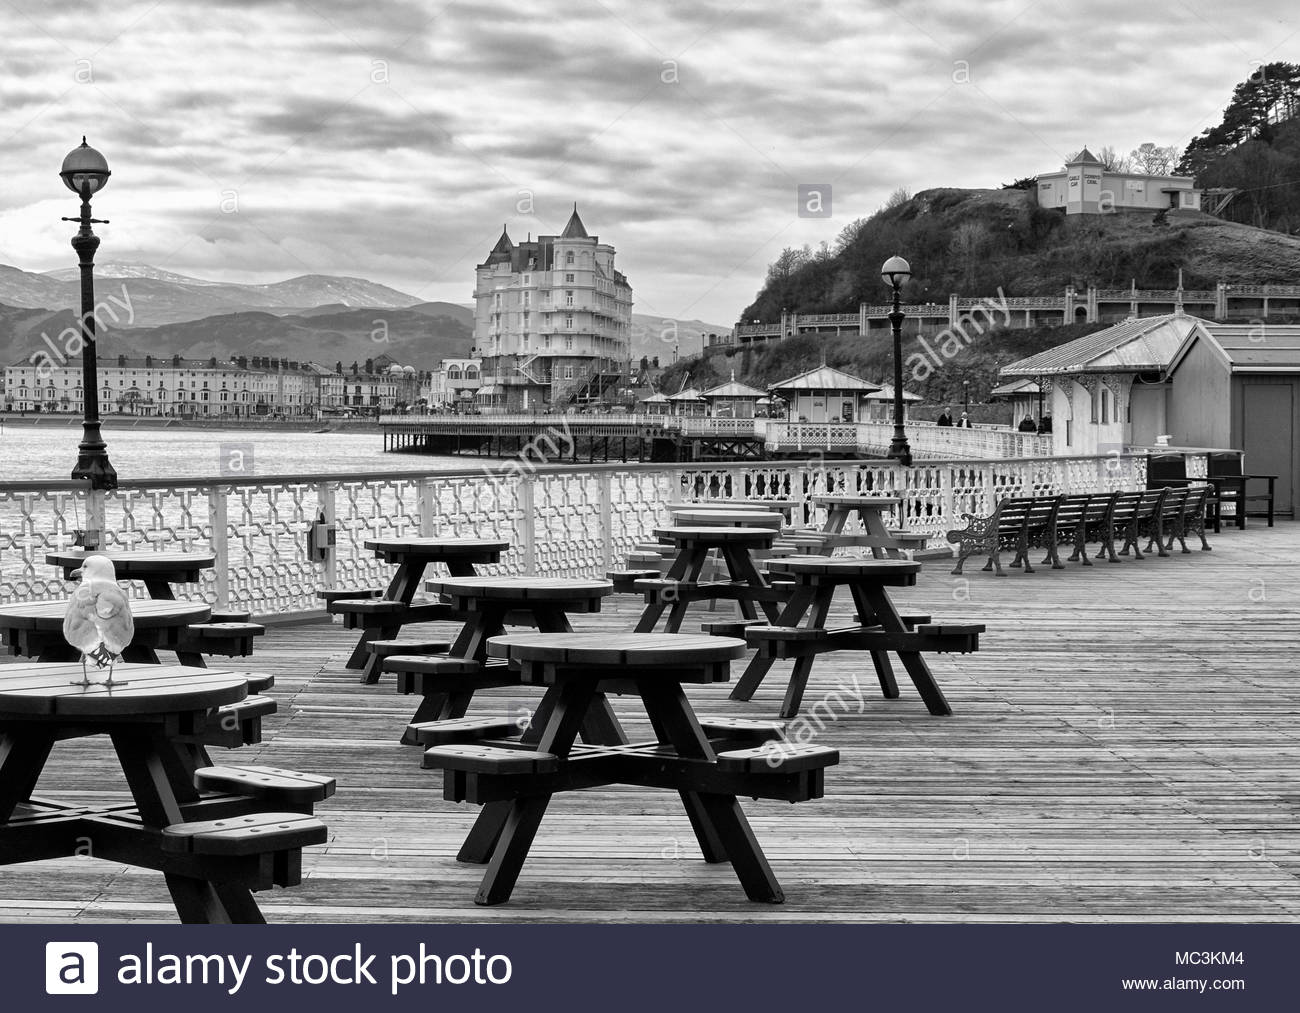 Empty tables in a cafe on llandudno pier in the welsh seaside resort in north wales uk - Stock Image